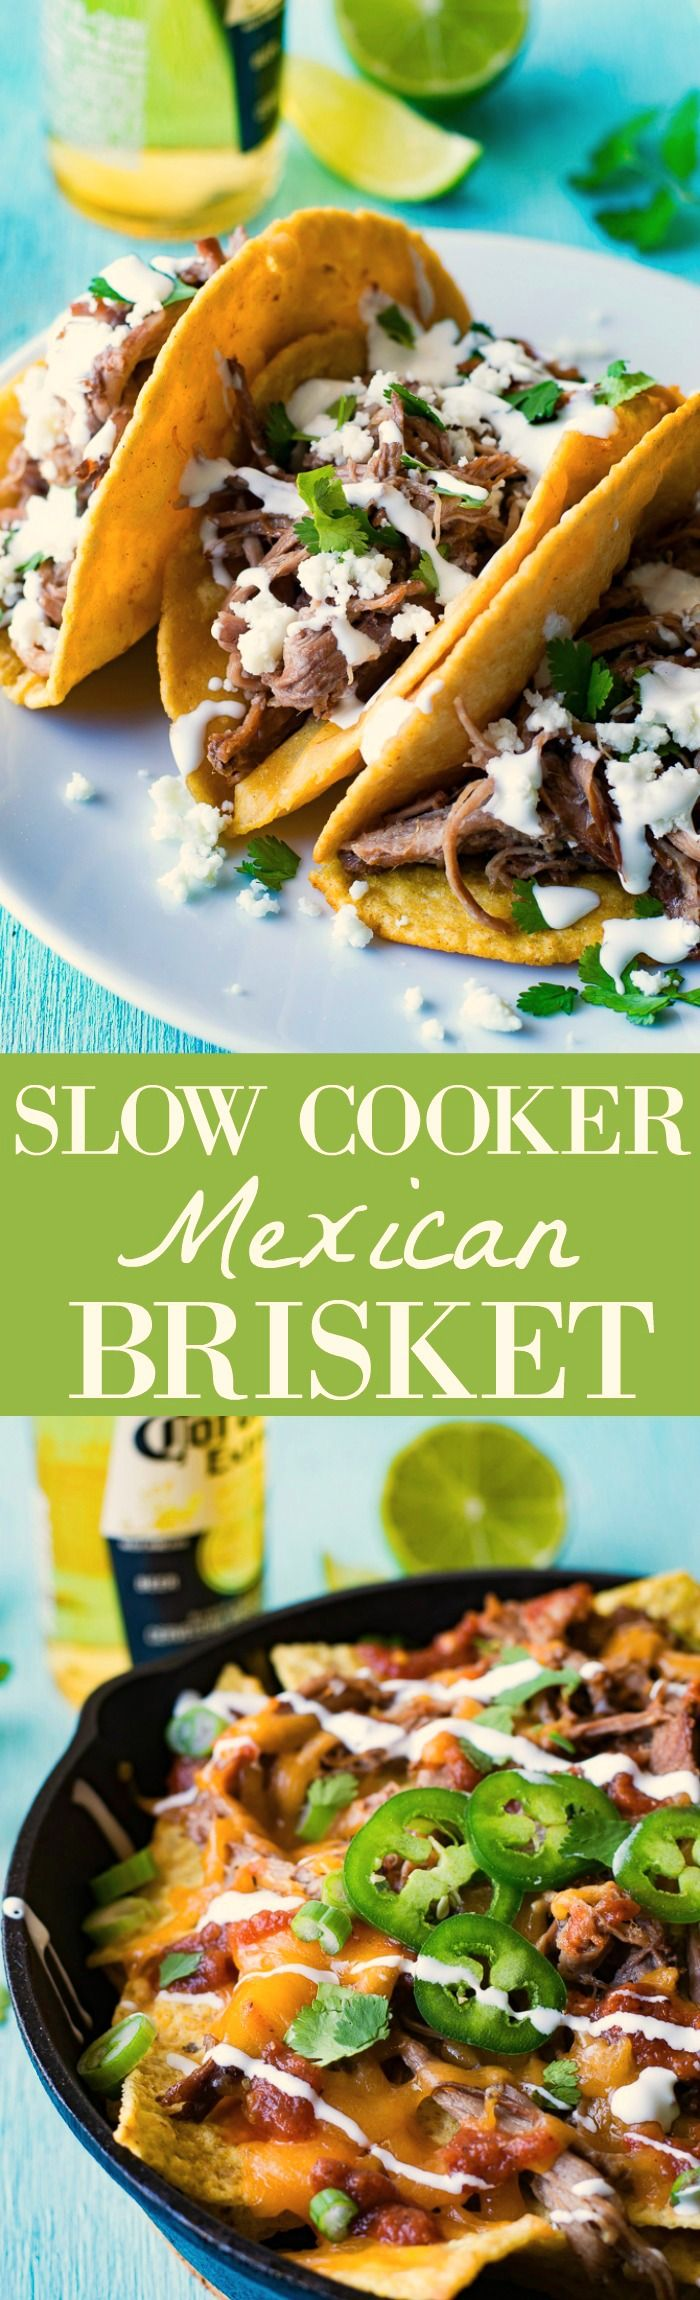 Slow Cooker Mexican Brisket